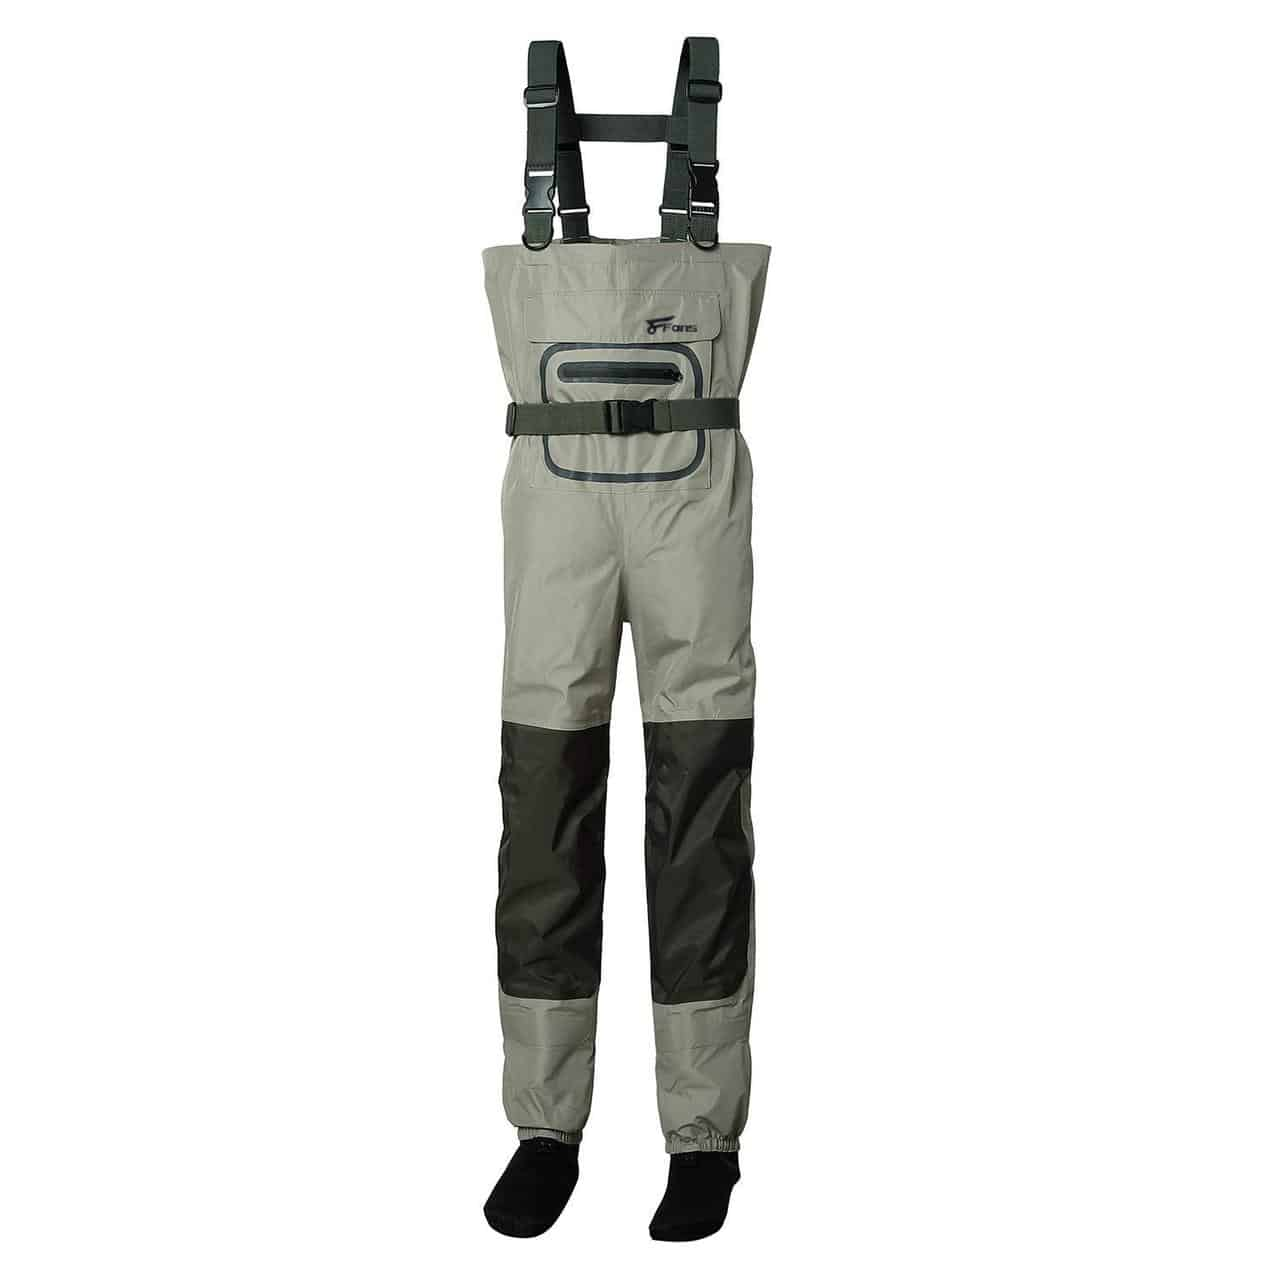 Fly Fishing Waders by 8 Fans